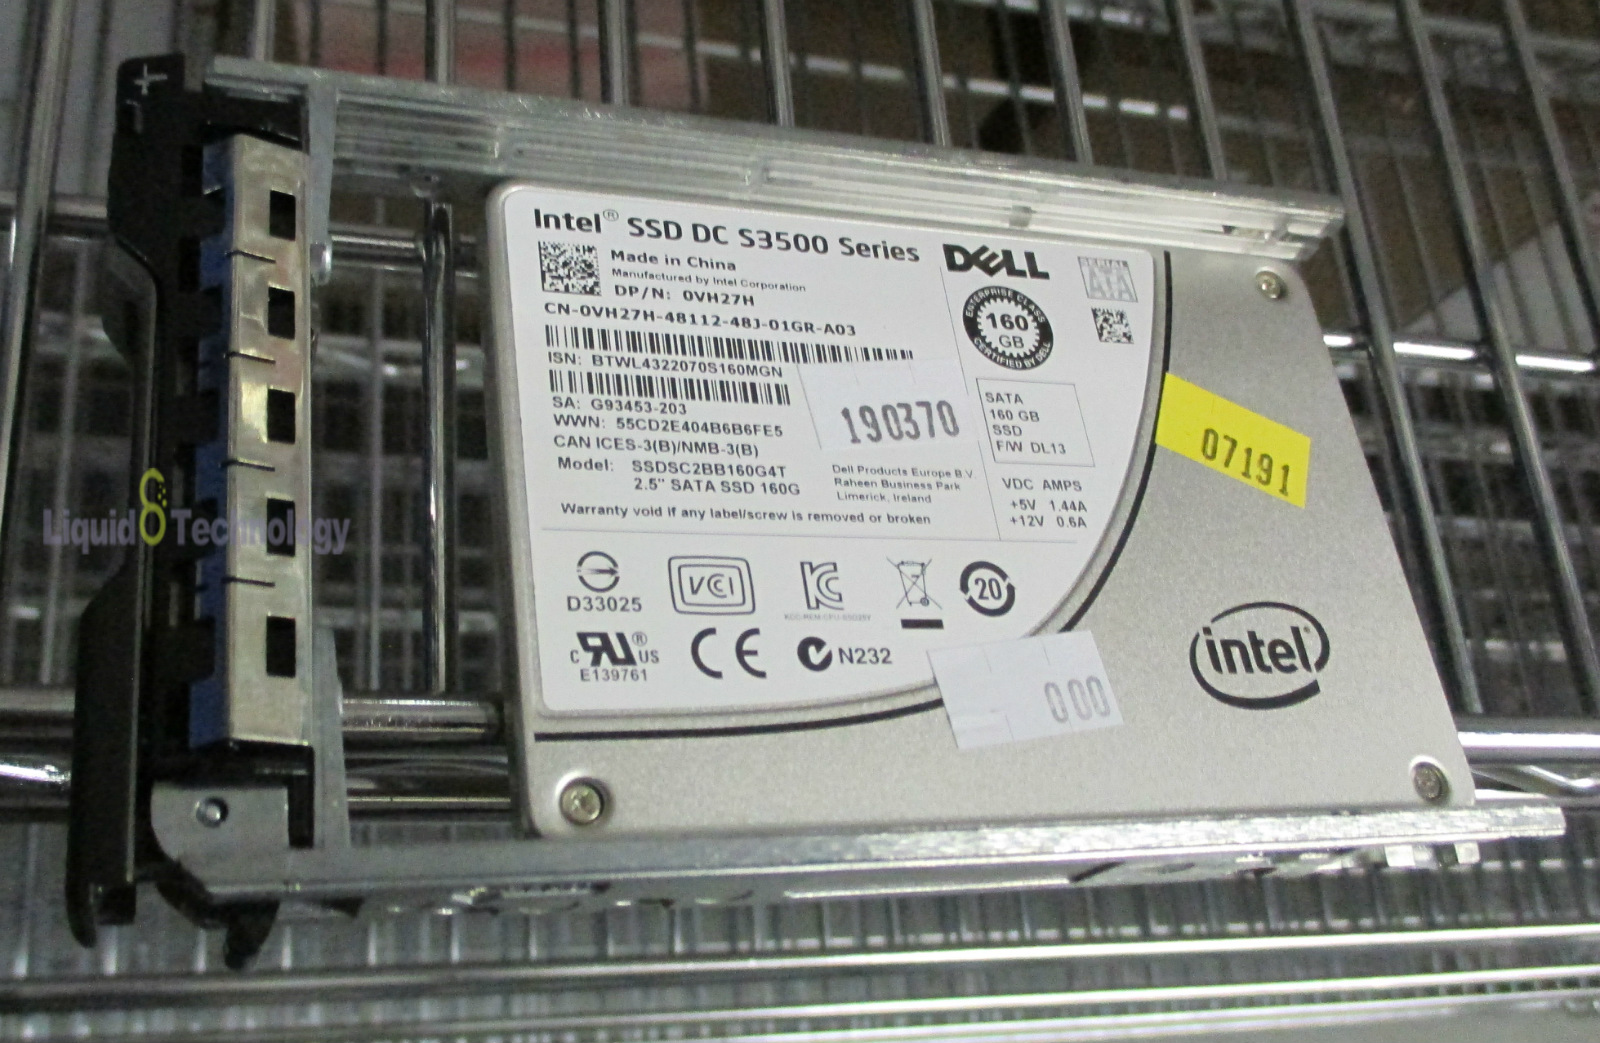 "5"" solid state drive ssdsc2bb160g4t vh27h r620 r610图片"